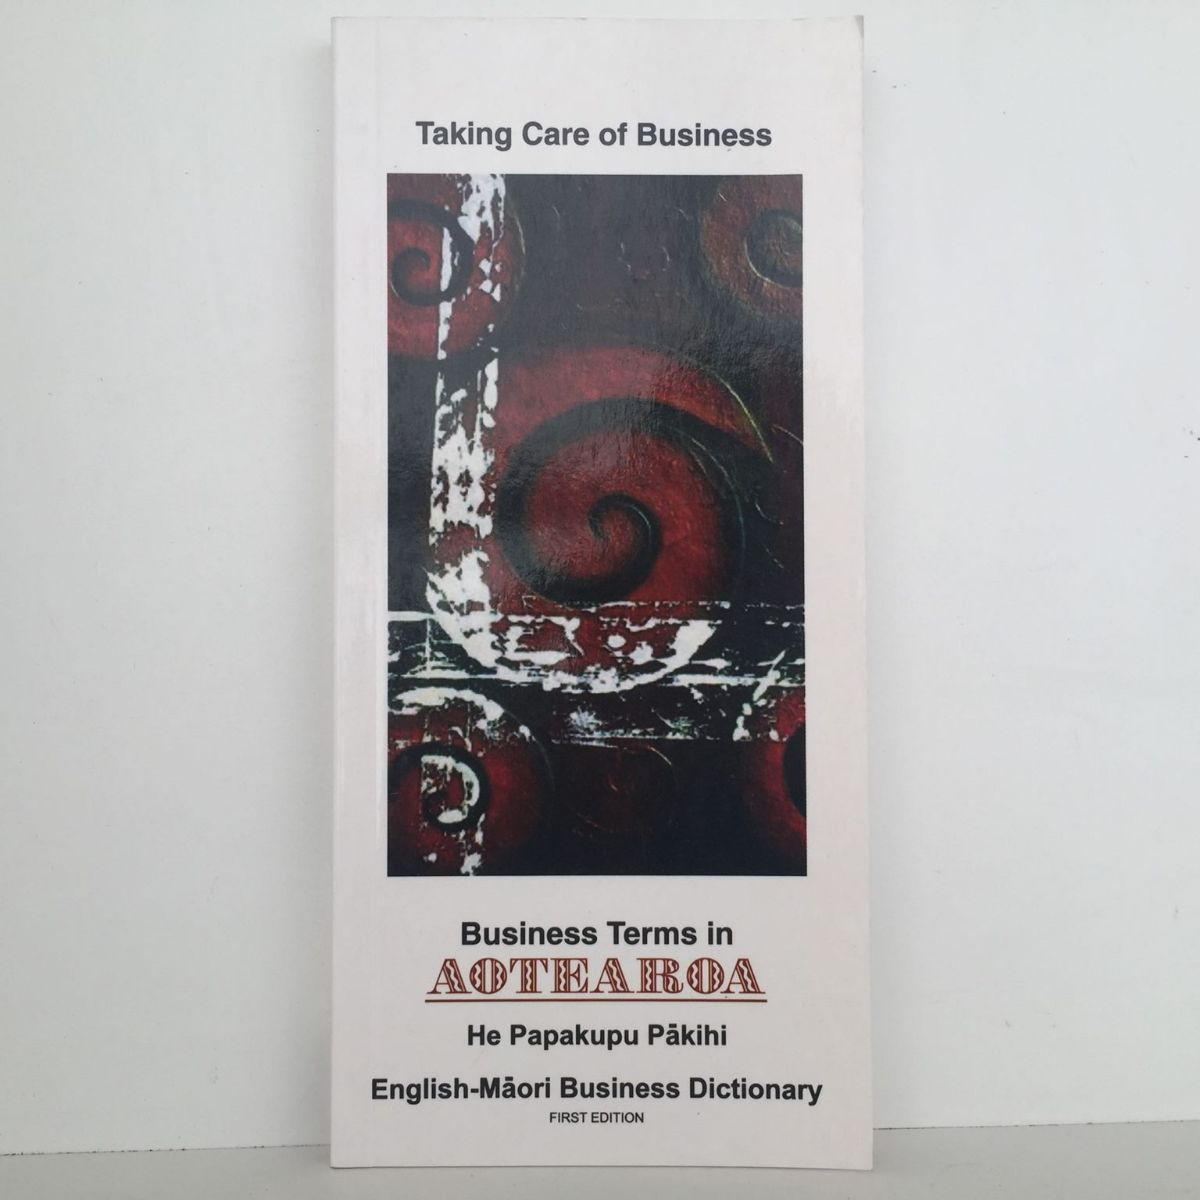 Taking Care of Business: Business Terms in Aotearoa: English-Maori Business Dictionary